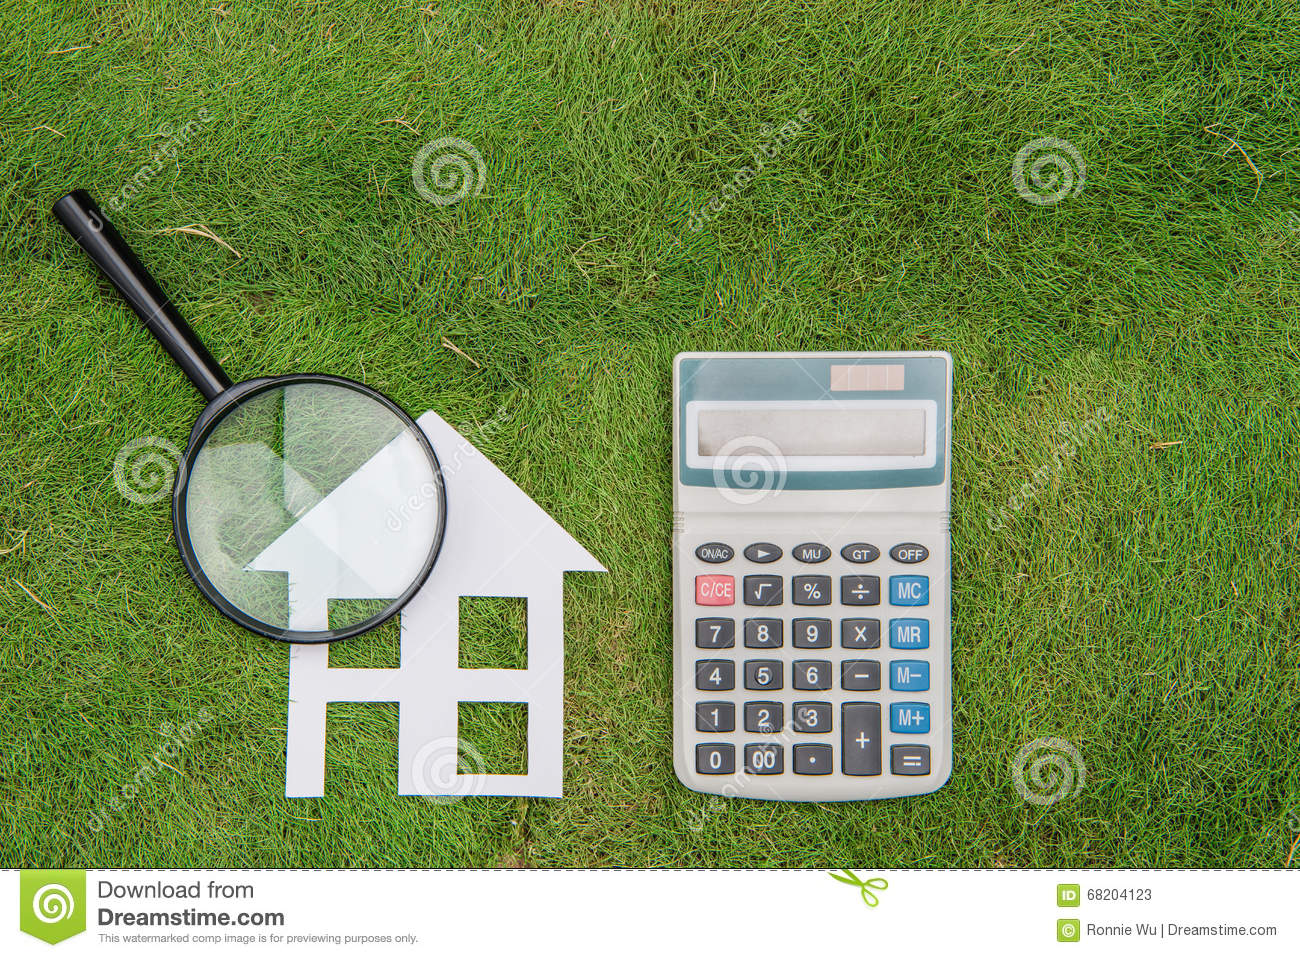 Buy green building house mortgage calculations calculator for Build new house calculator